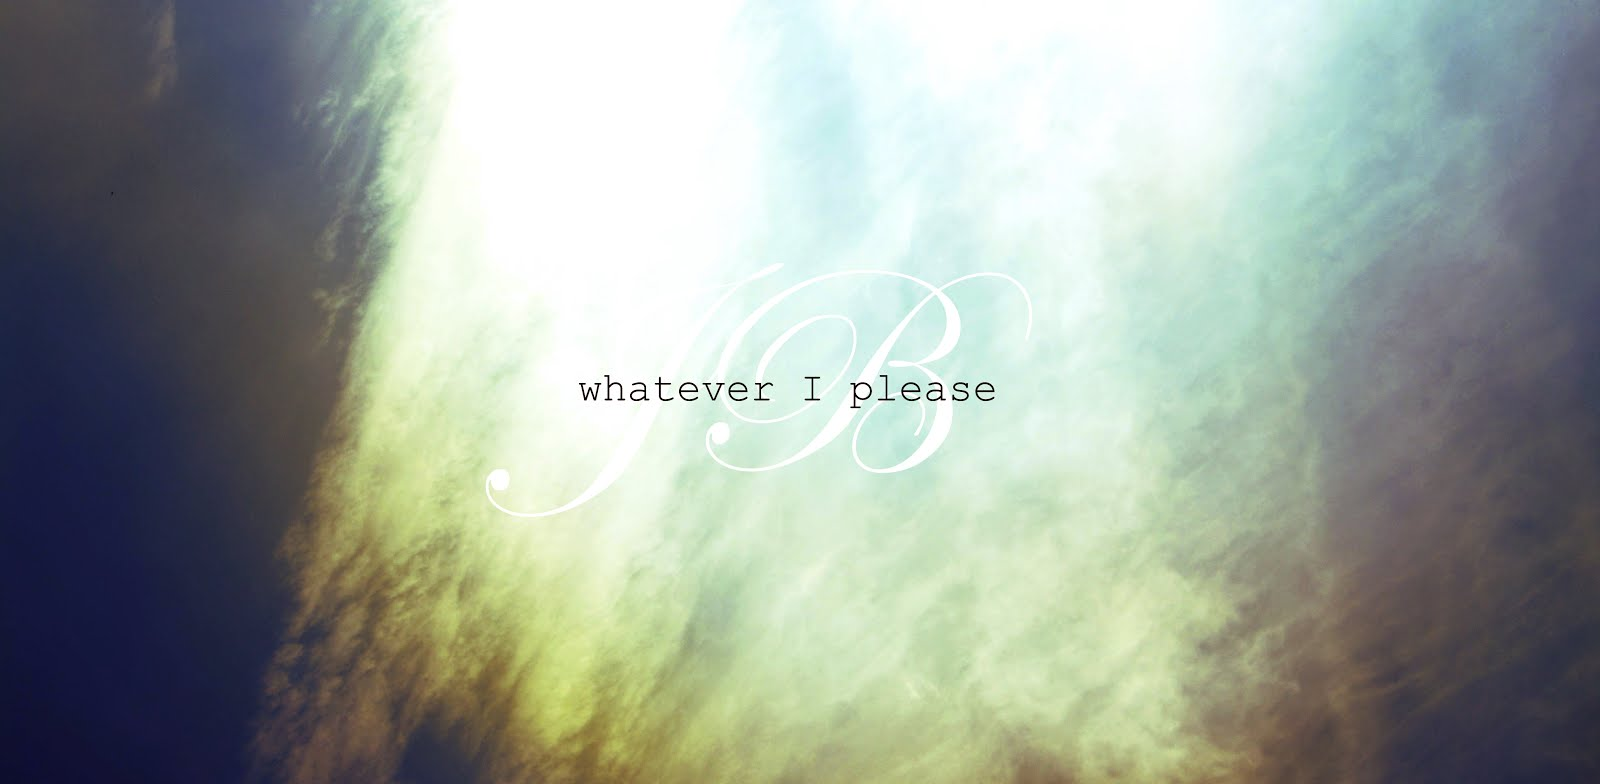 WHATEVER I PLEASE